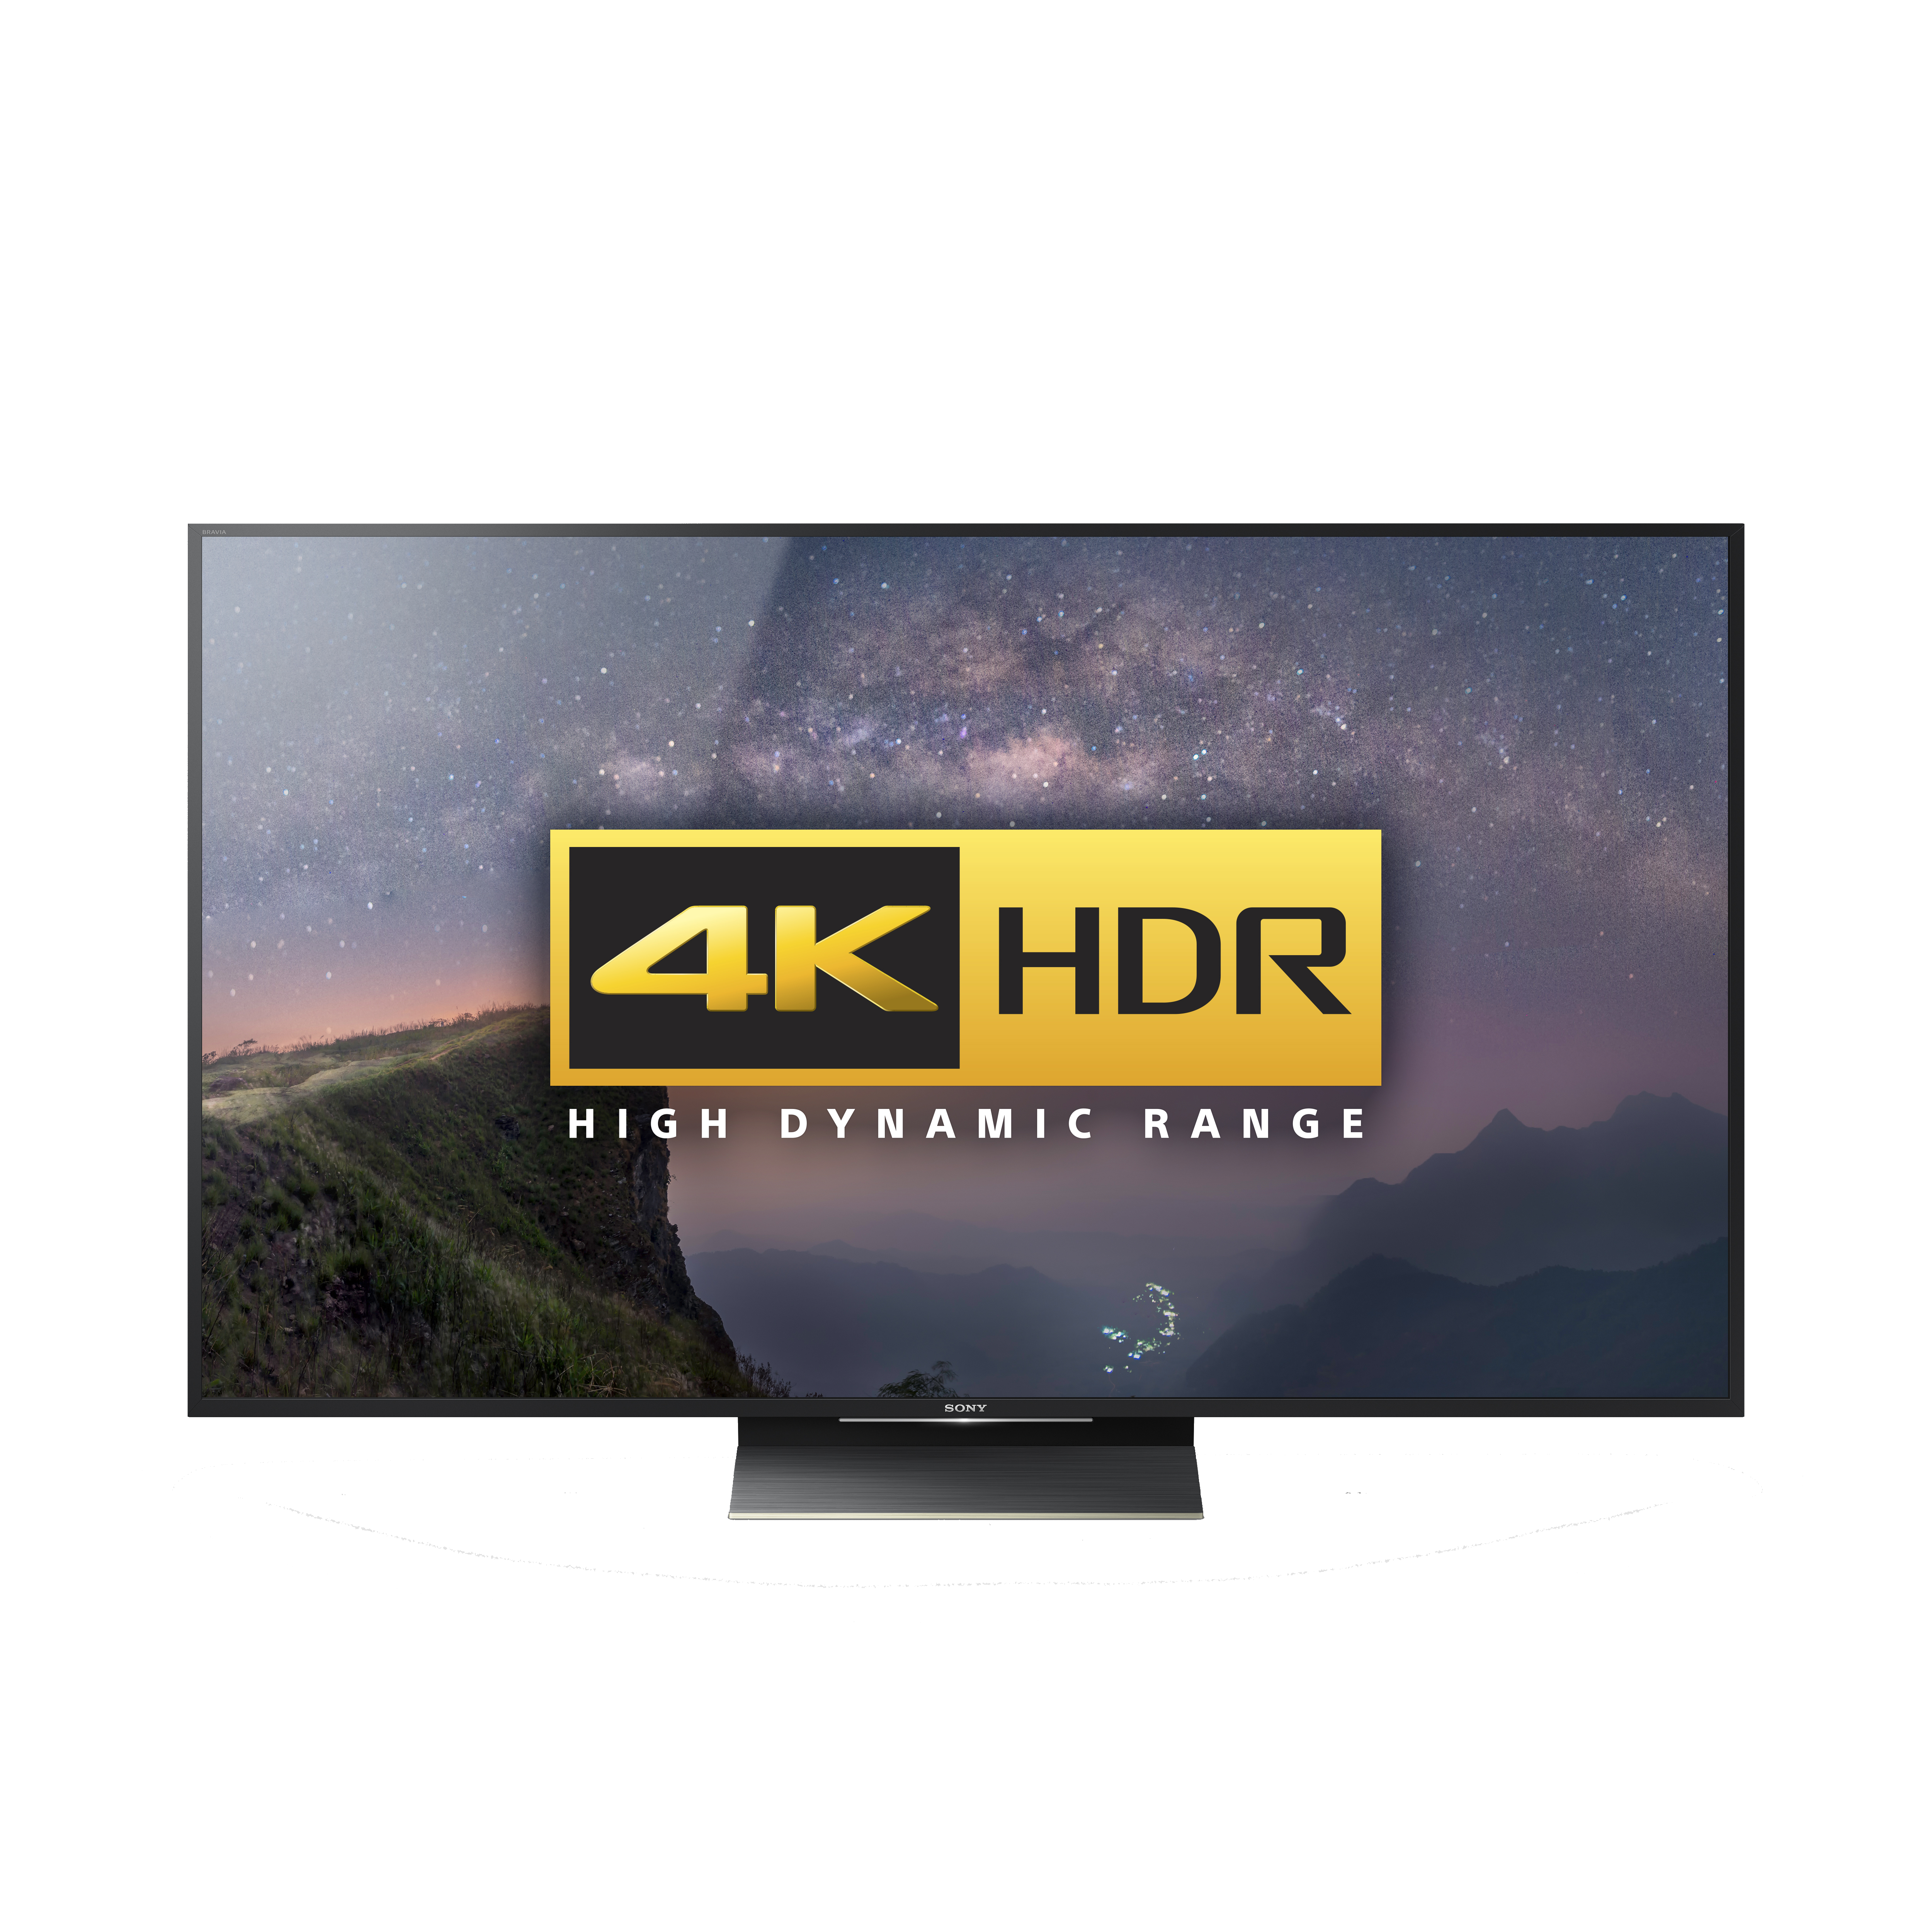 sony tv hdr. sony tv hdr